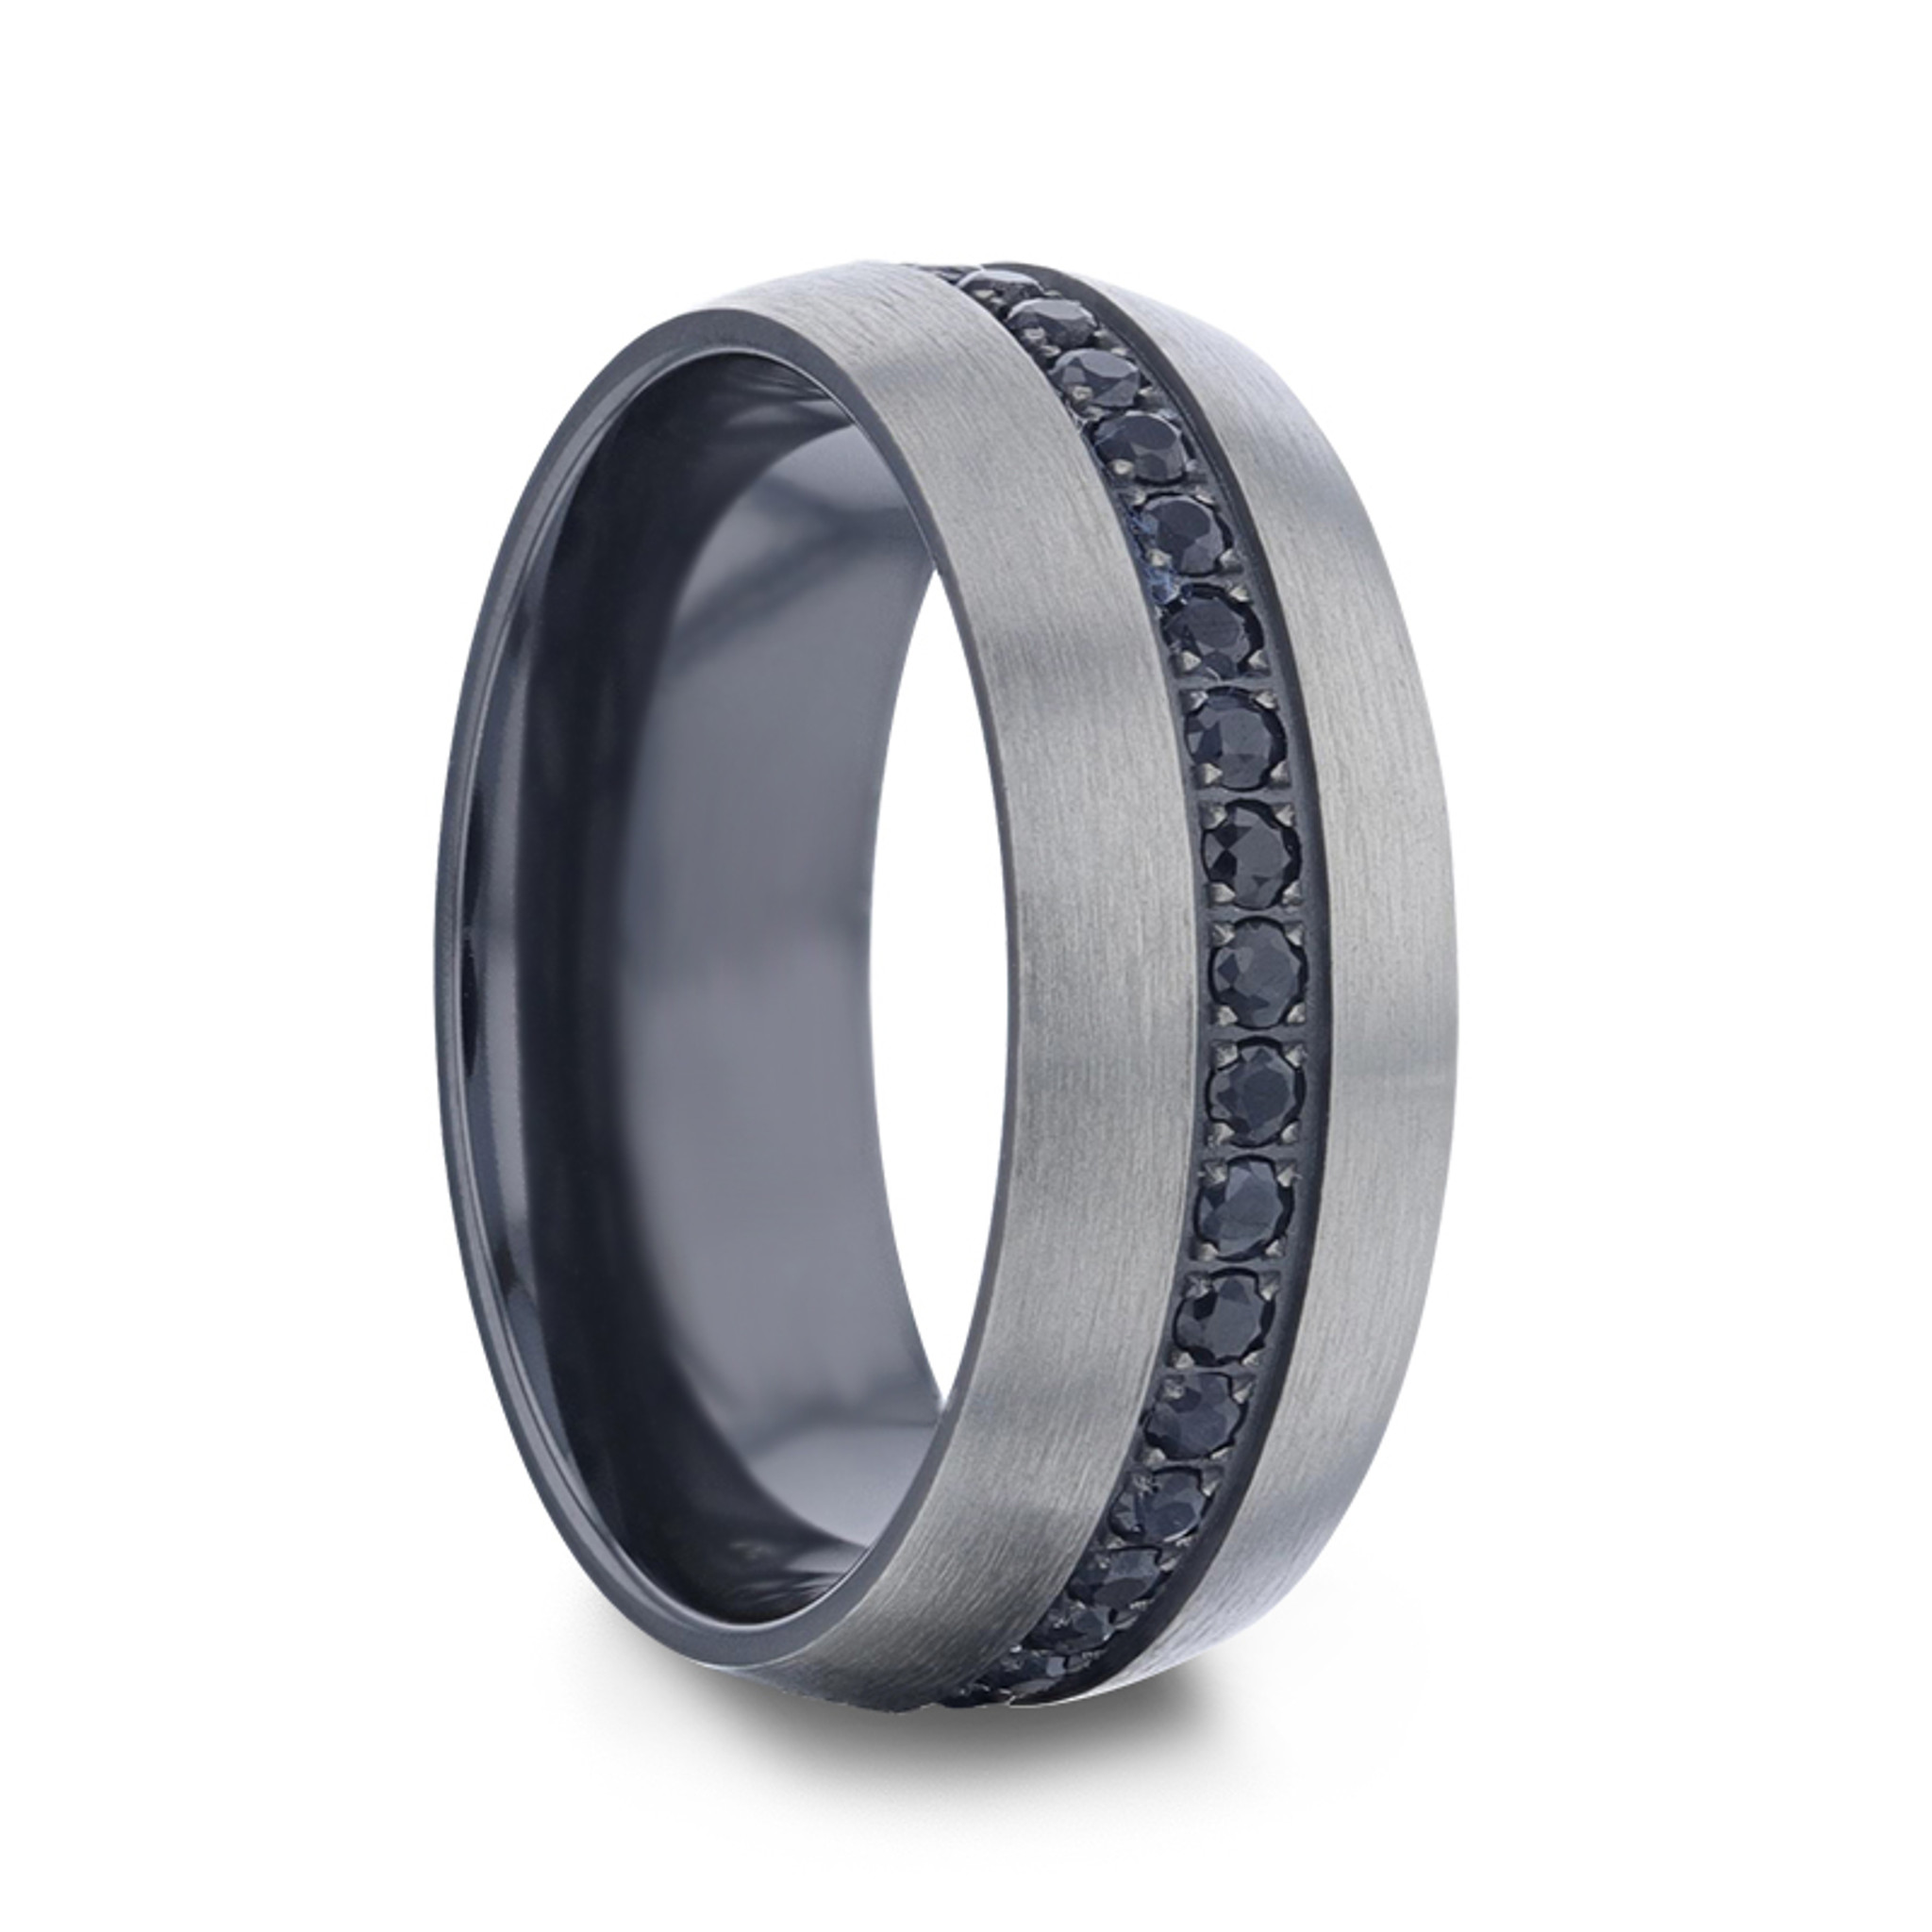 Heracles Brushed Titanium Men's Wedding Band with Black Sapphires from Vansweden Jewelers